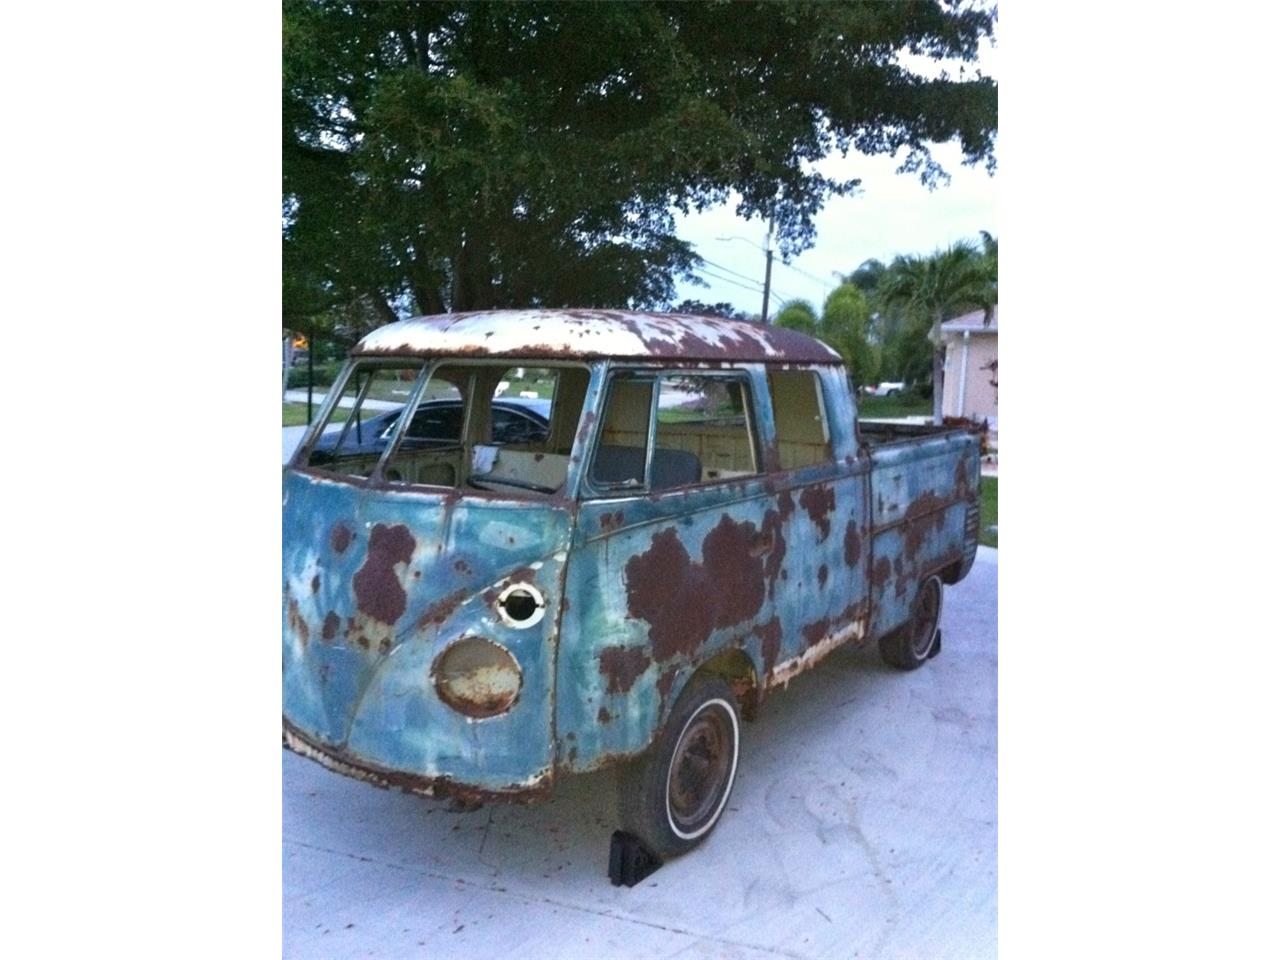 Large Picture of Classic '63 Volkswagen Double Cab located in Ormond Beach Florida - $68,000.00 Offered by a Private Seller - PJFH